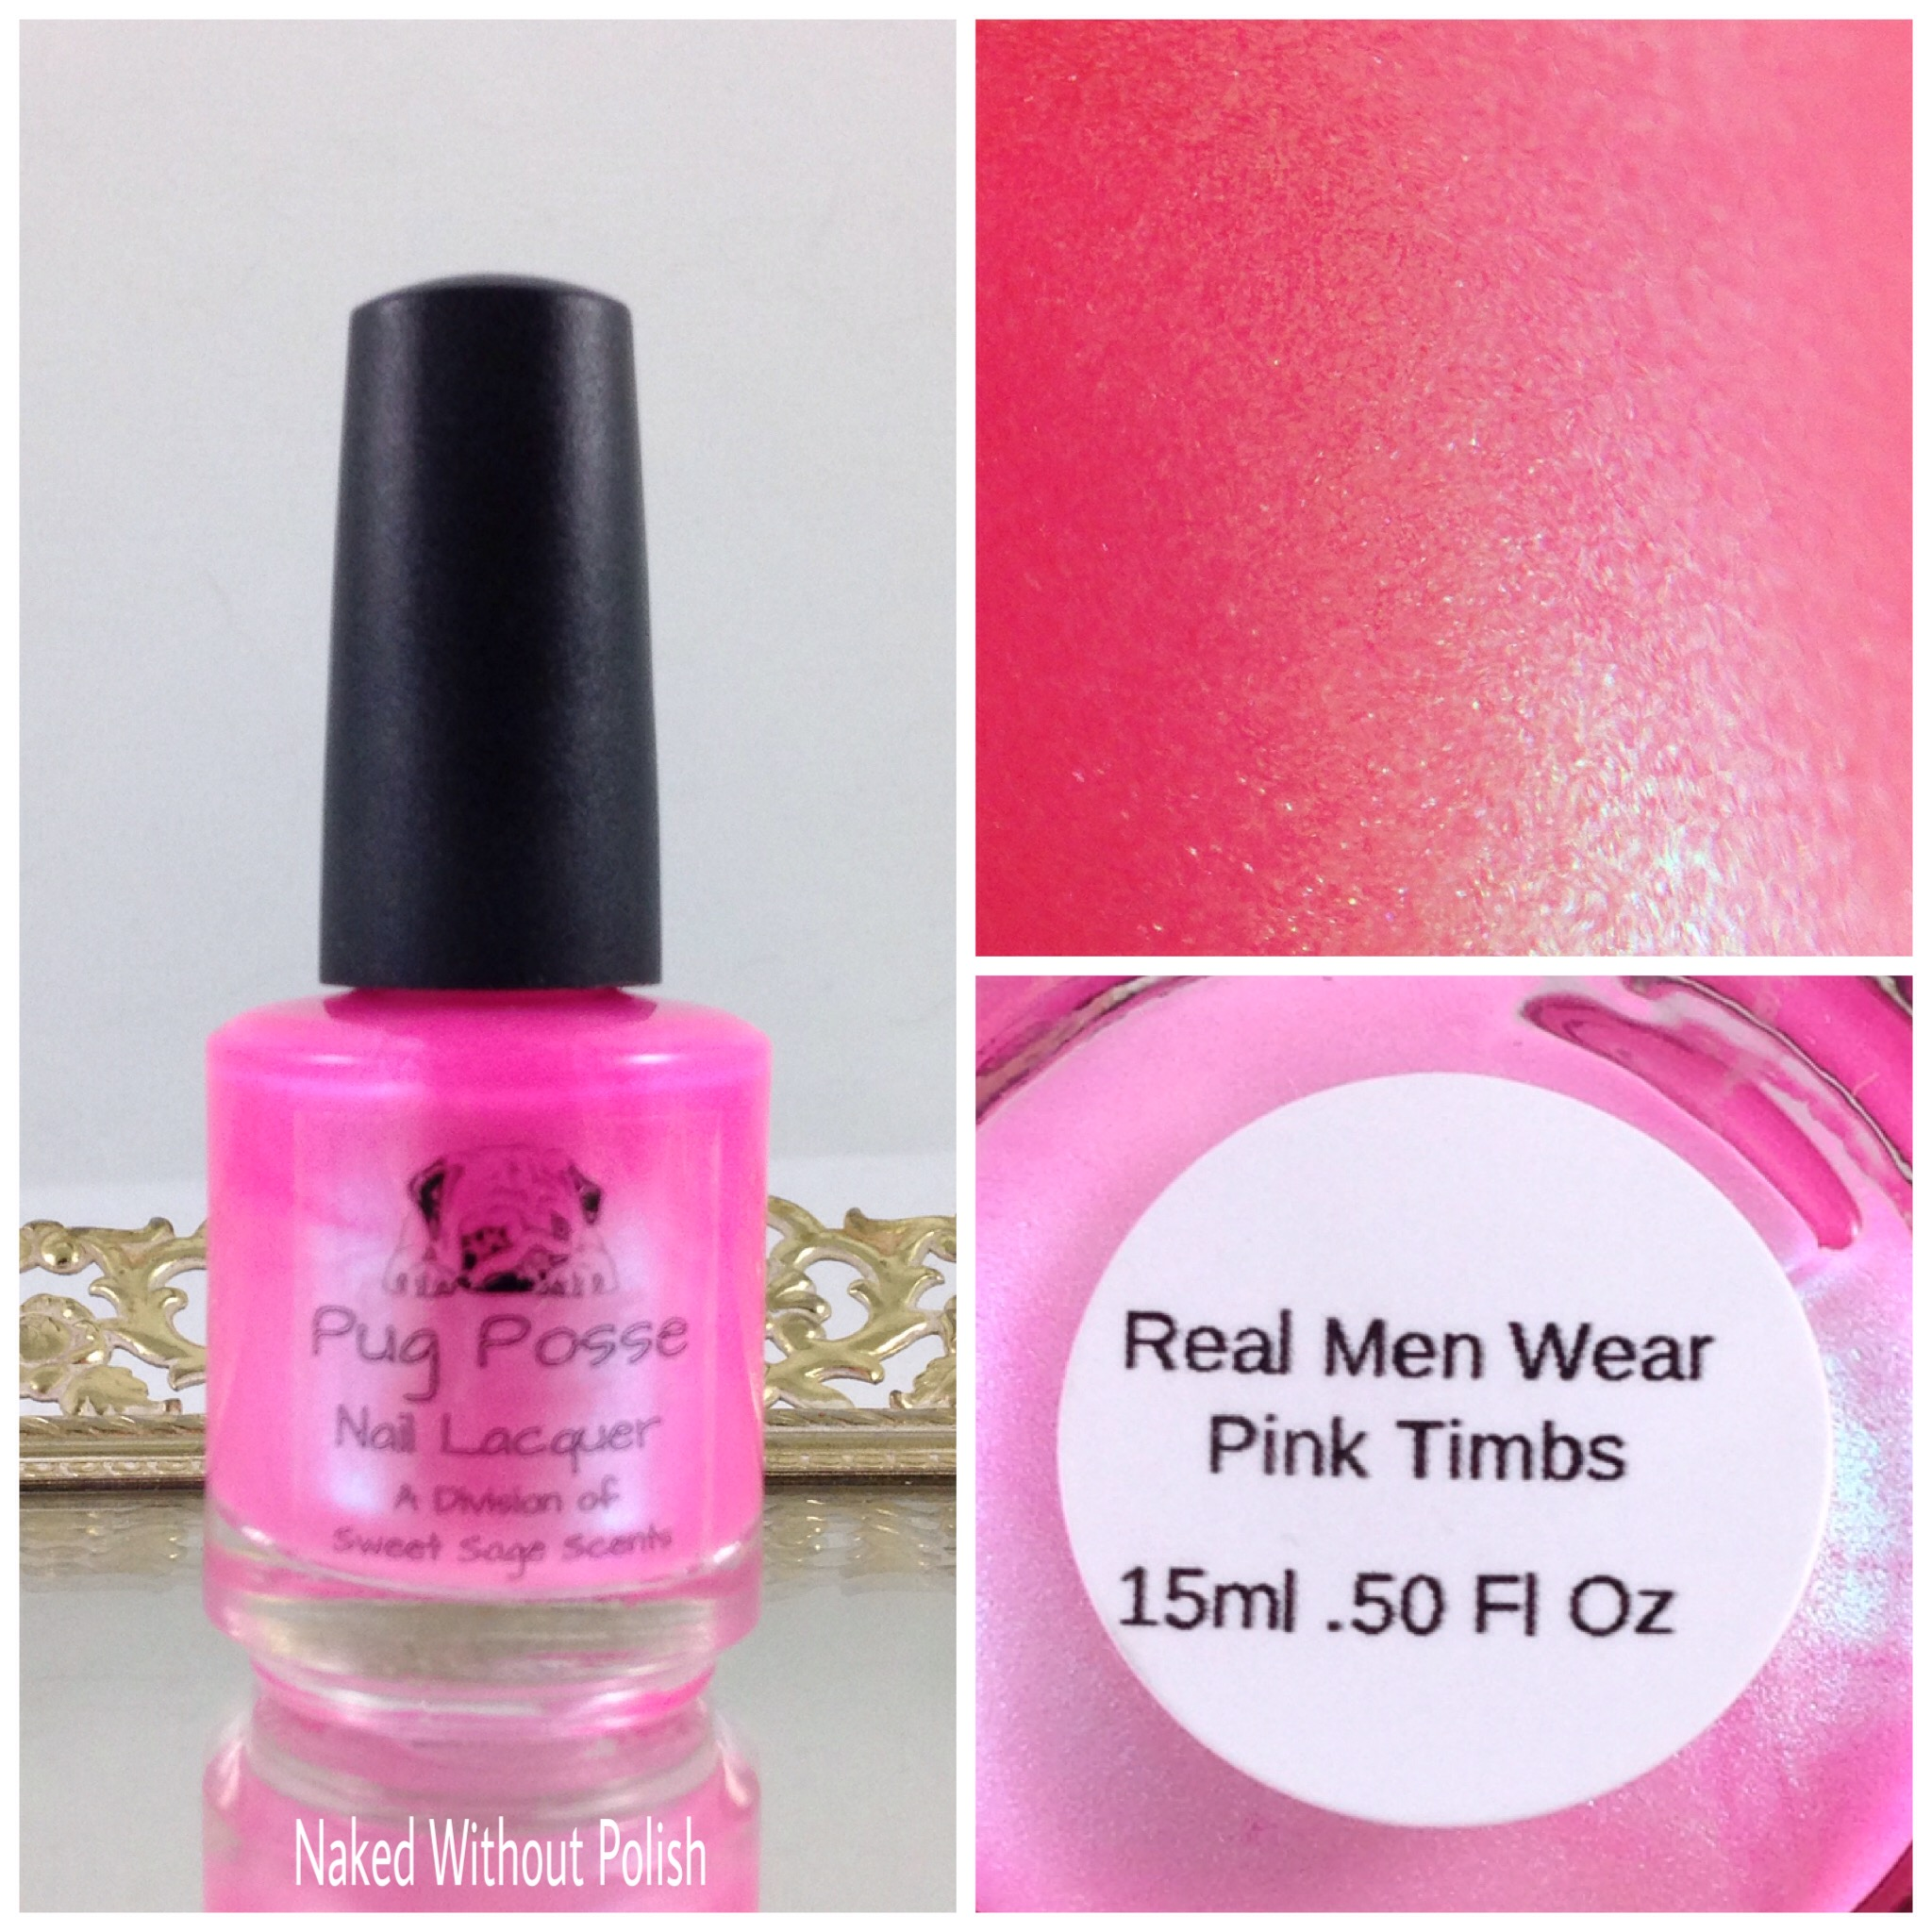 Pug-Posse-Nail-Lacquer-Real-Men-Wear-Pink-Timbs-1